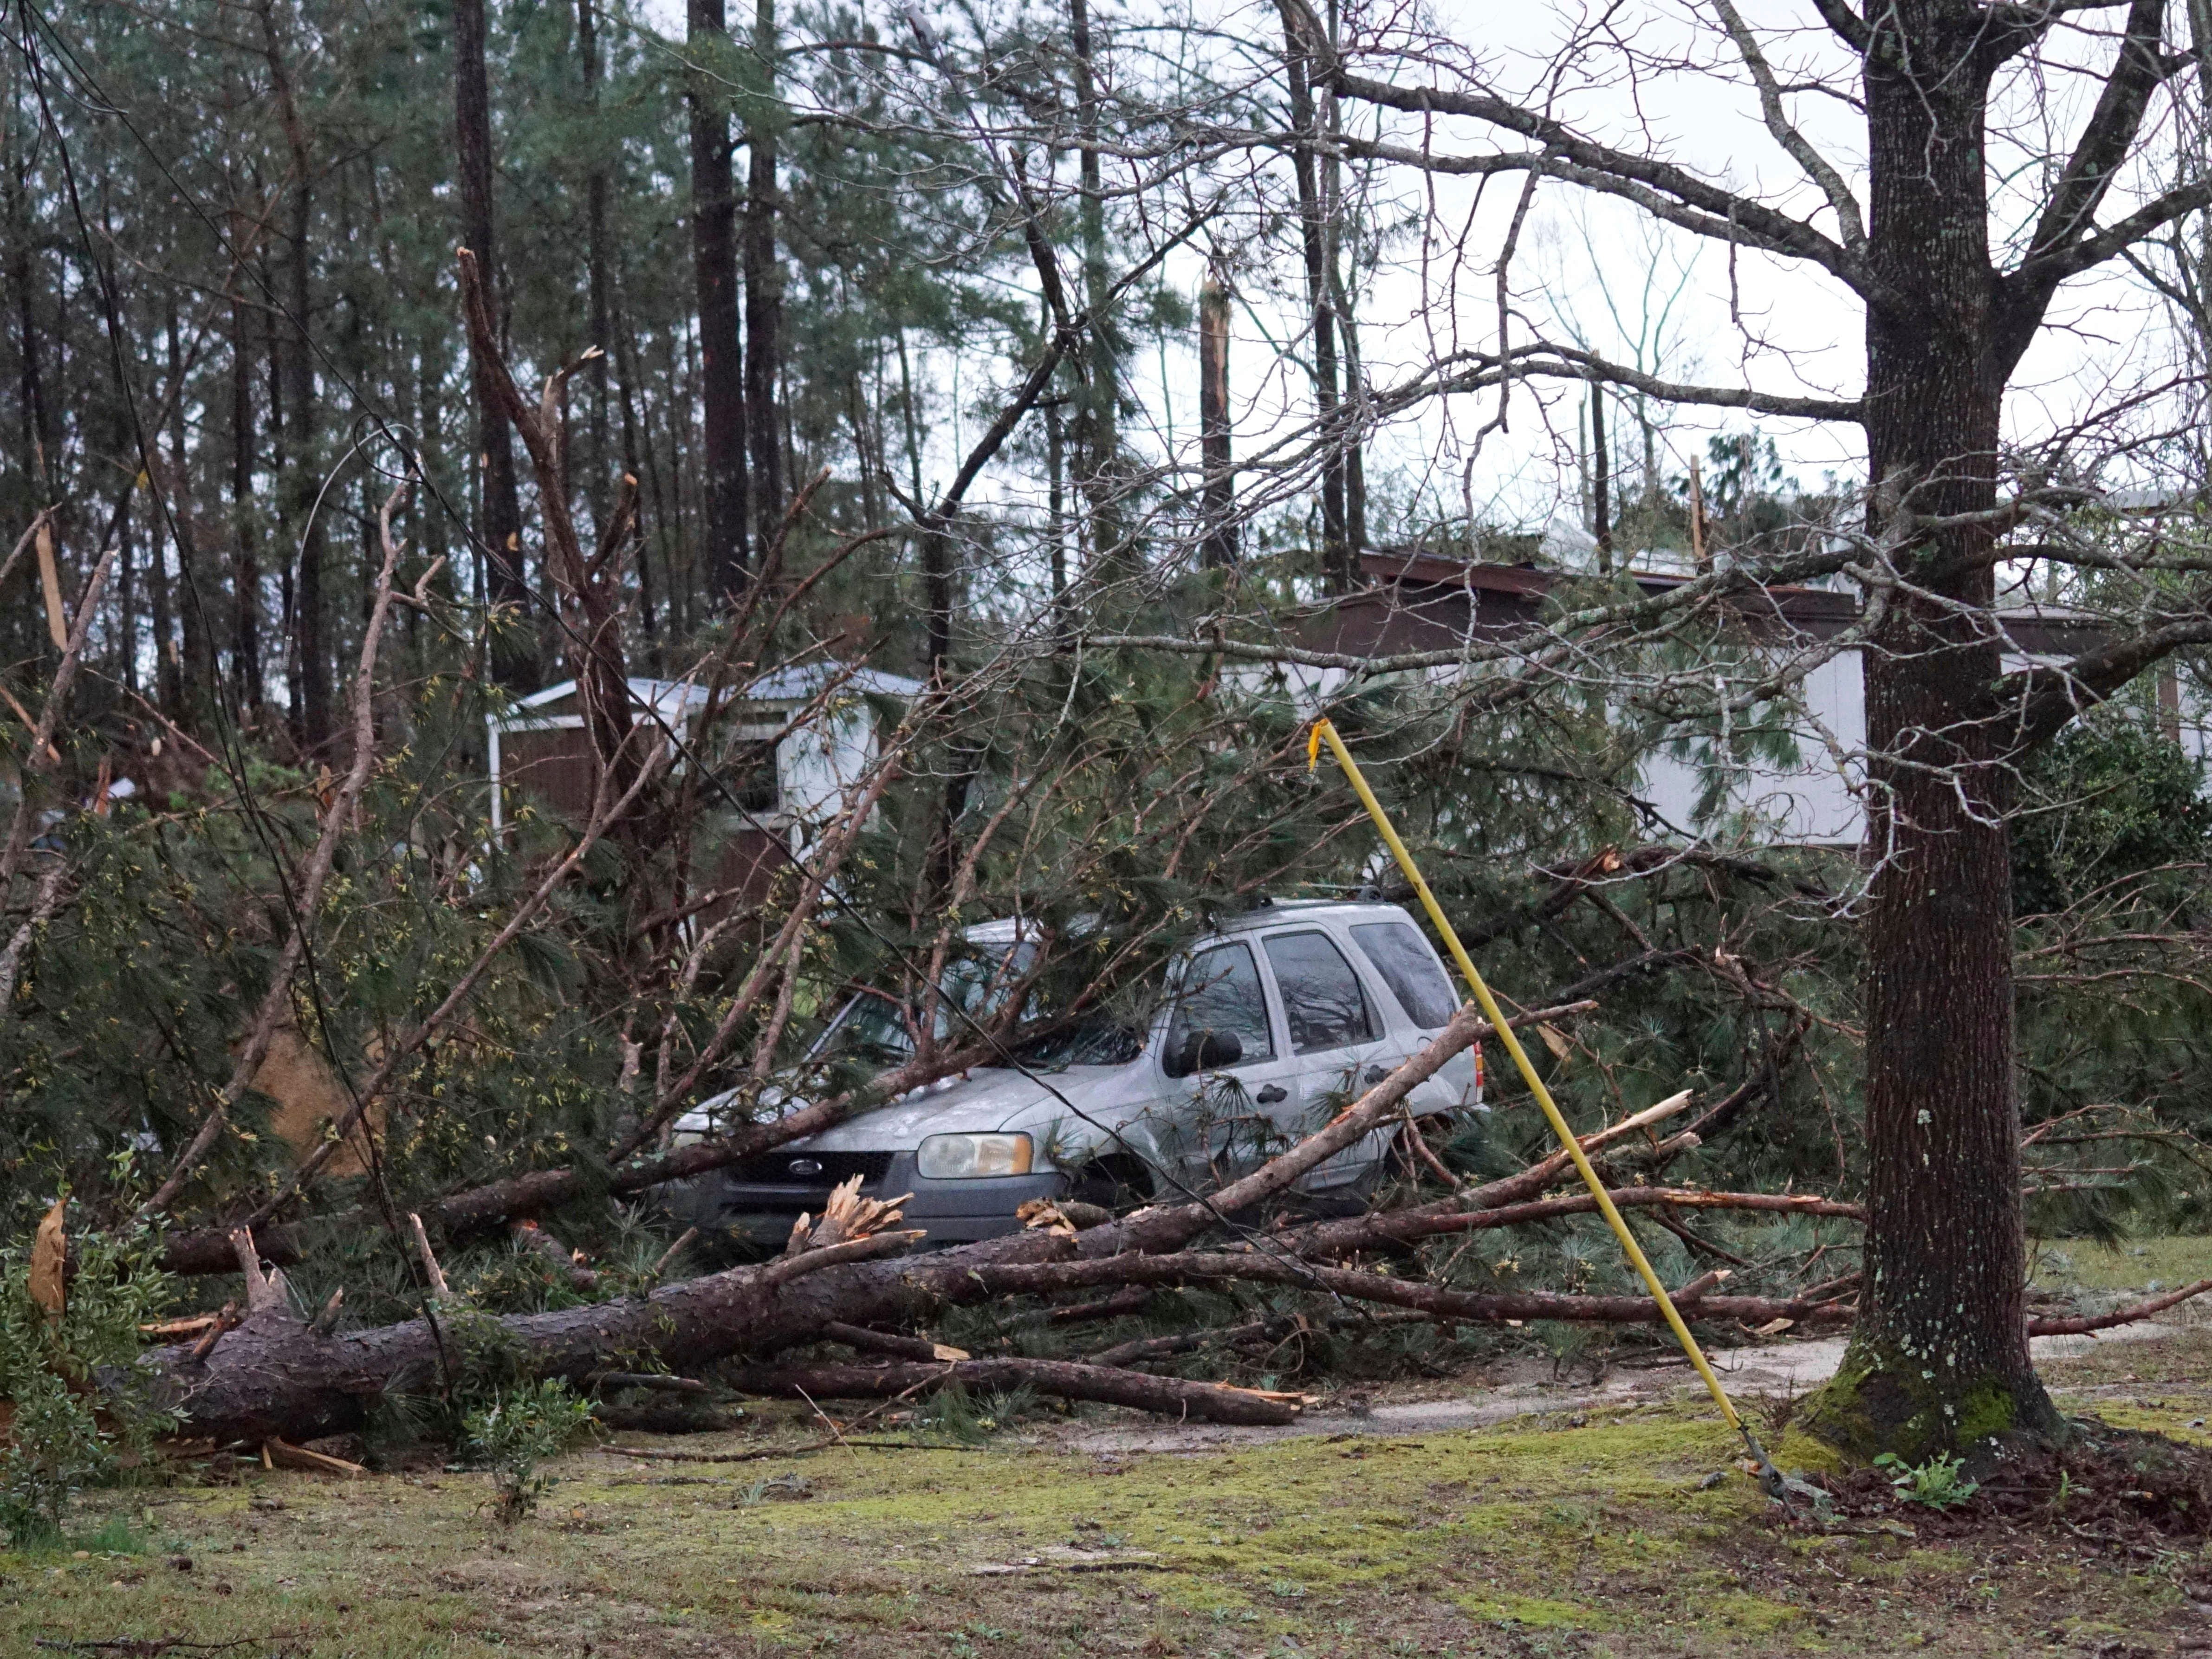 A vehicle is caught under downed trees along Lee Road 11 in Beauregard, Ala., Sunday, March 3, 2019, after a powerful storm system passed through the area. (Kara Coleman Fields/Opelika-Auburn News via AP) ORG XMIT: ALOPE131